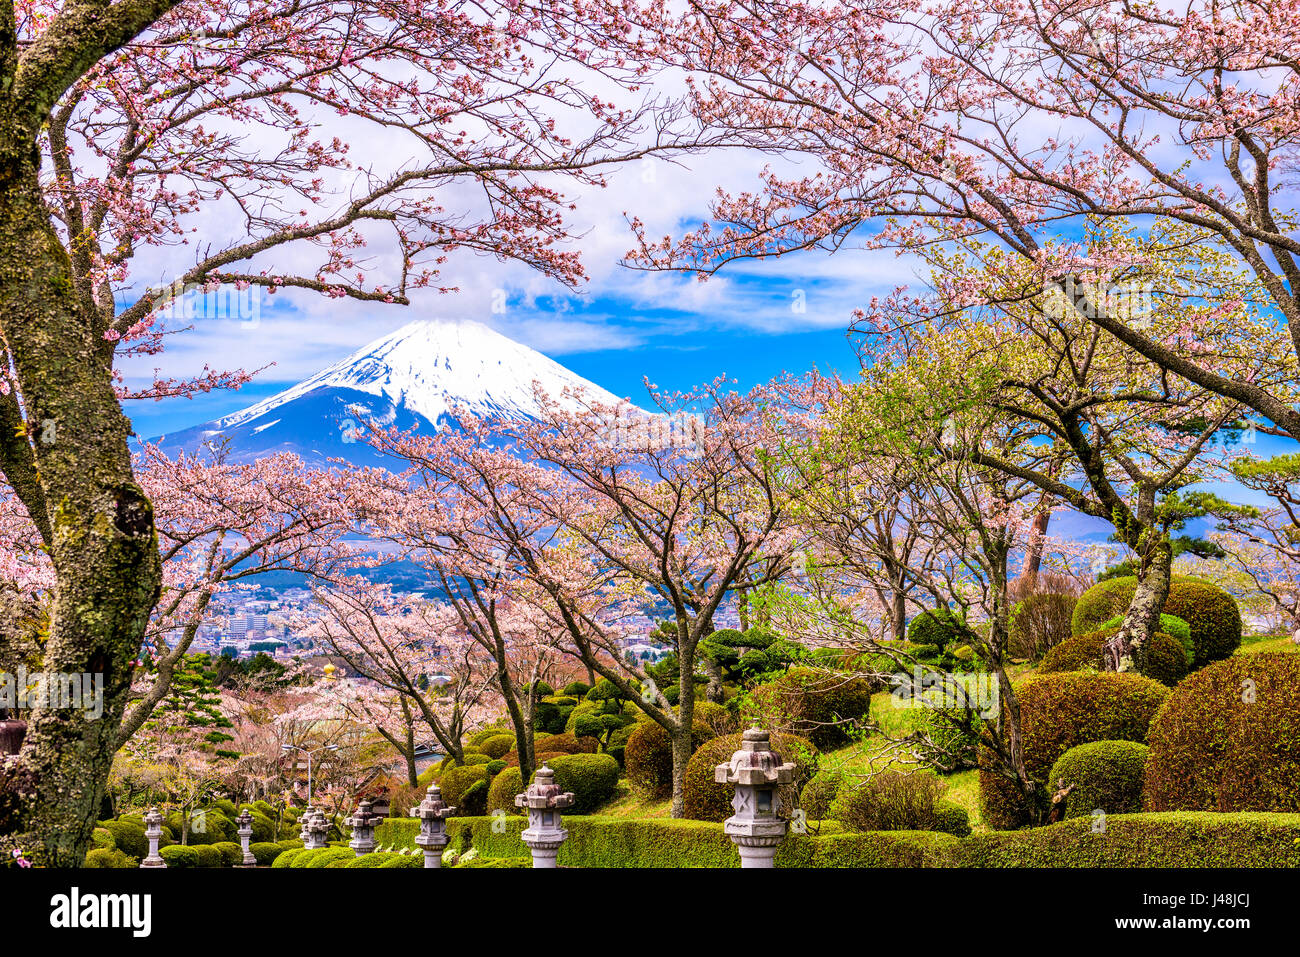 gotemba city japan at peace park with mt fuji in spring season